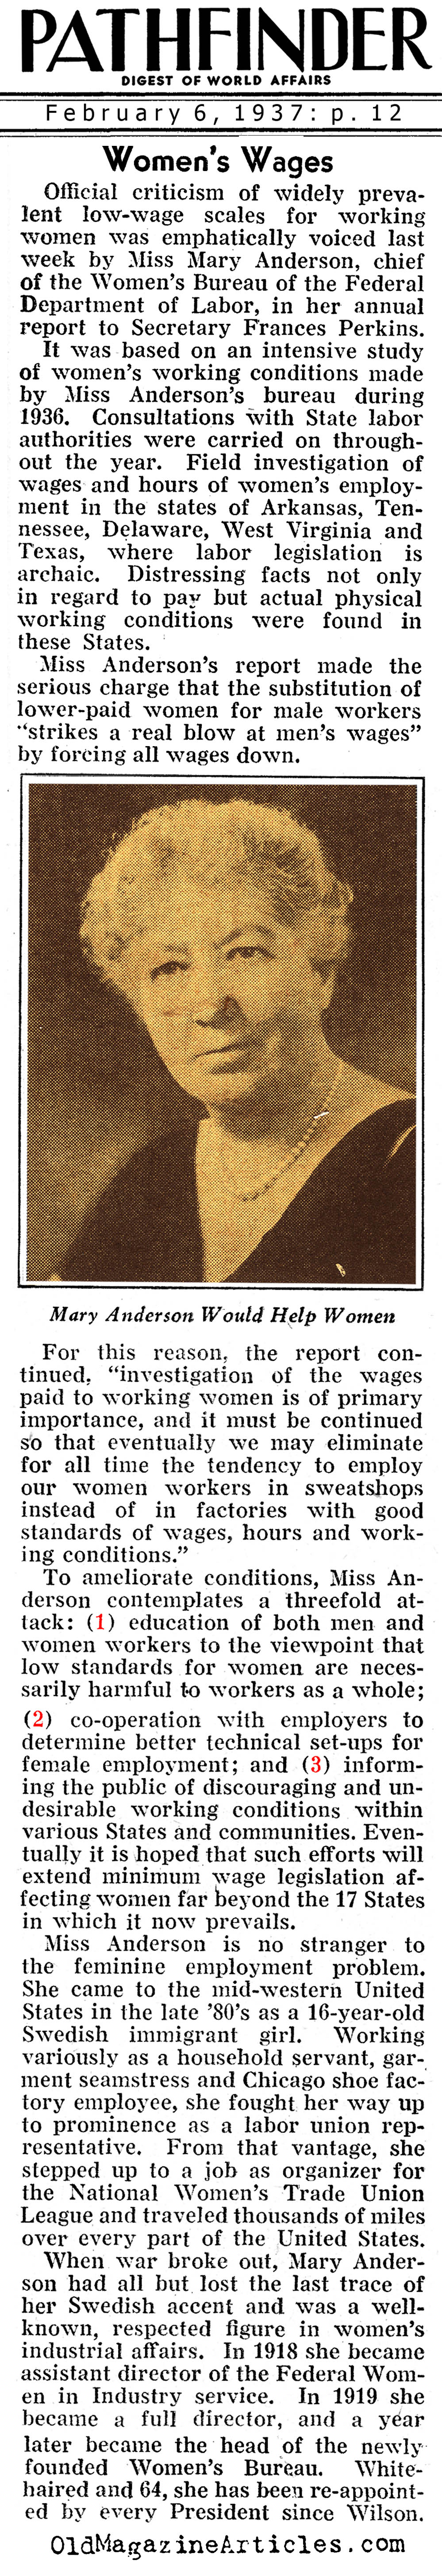 Low-Wage Pay Scales for Working Women (Pathfinder Magazine, 1937)